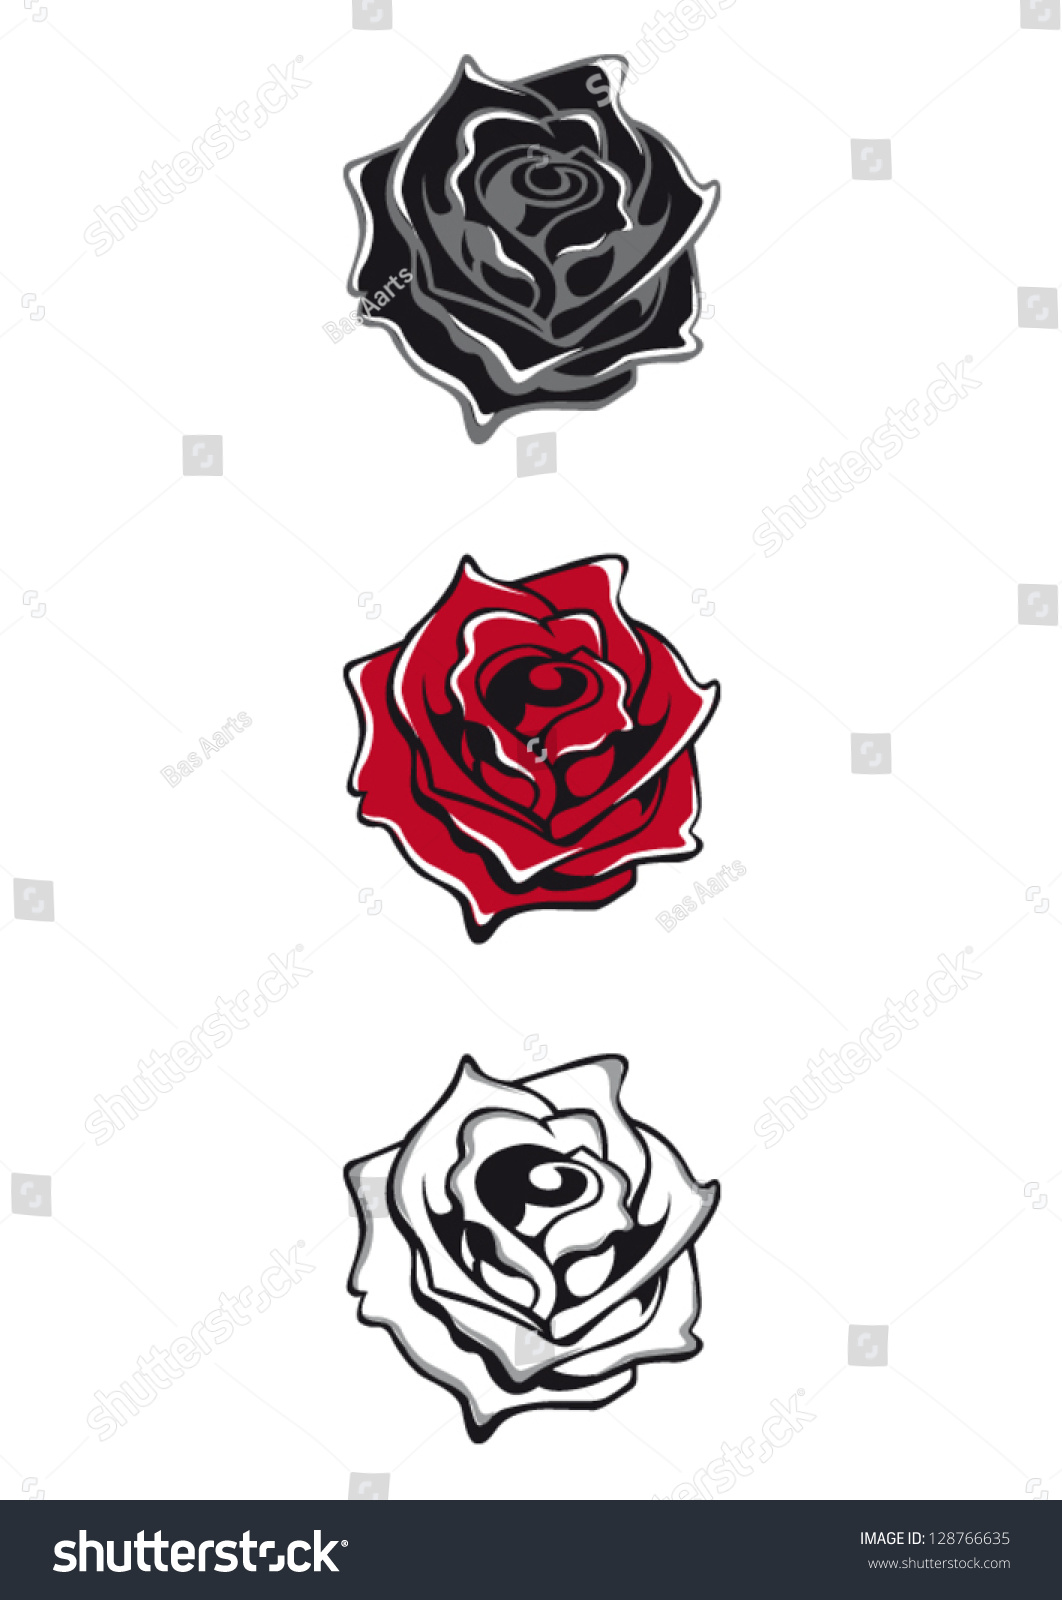 Tattoo flash isolated vector roses black stock vector for Vector tattoo sleeve